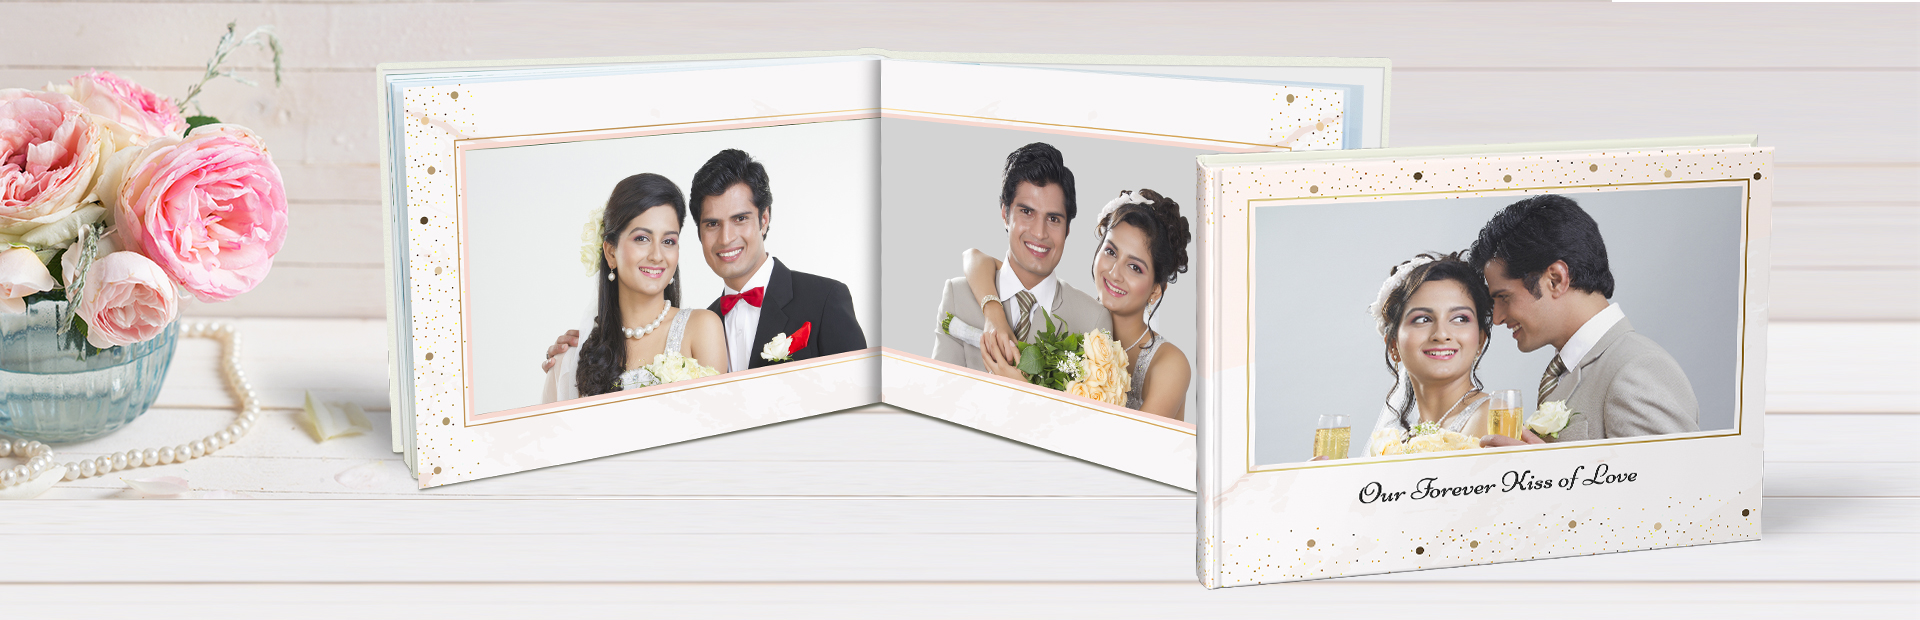 Wedding Vows Photo Books Online